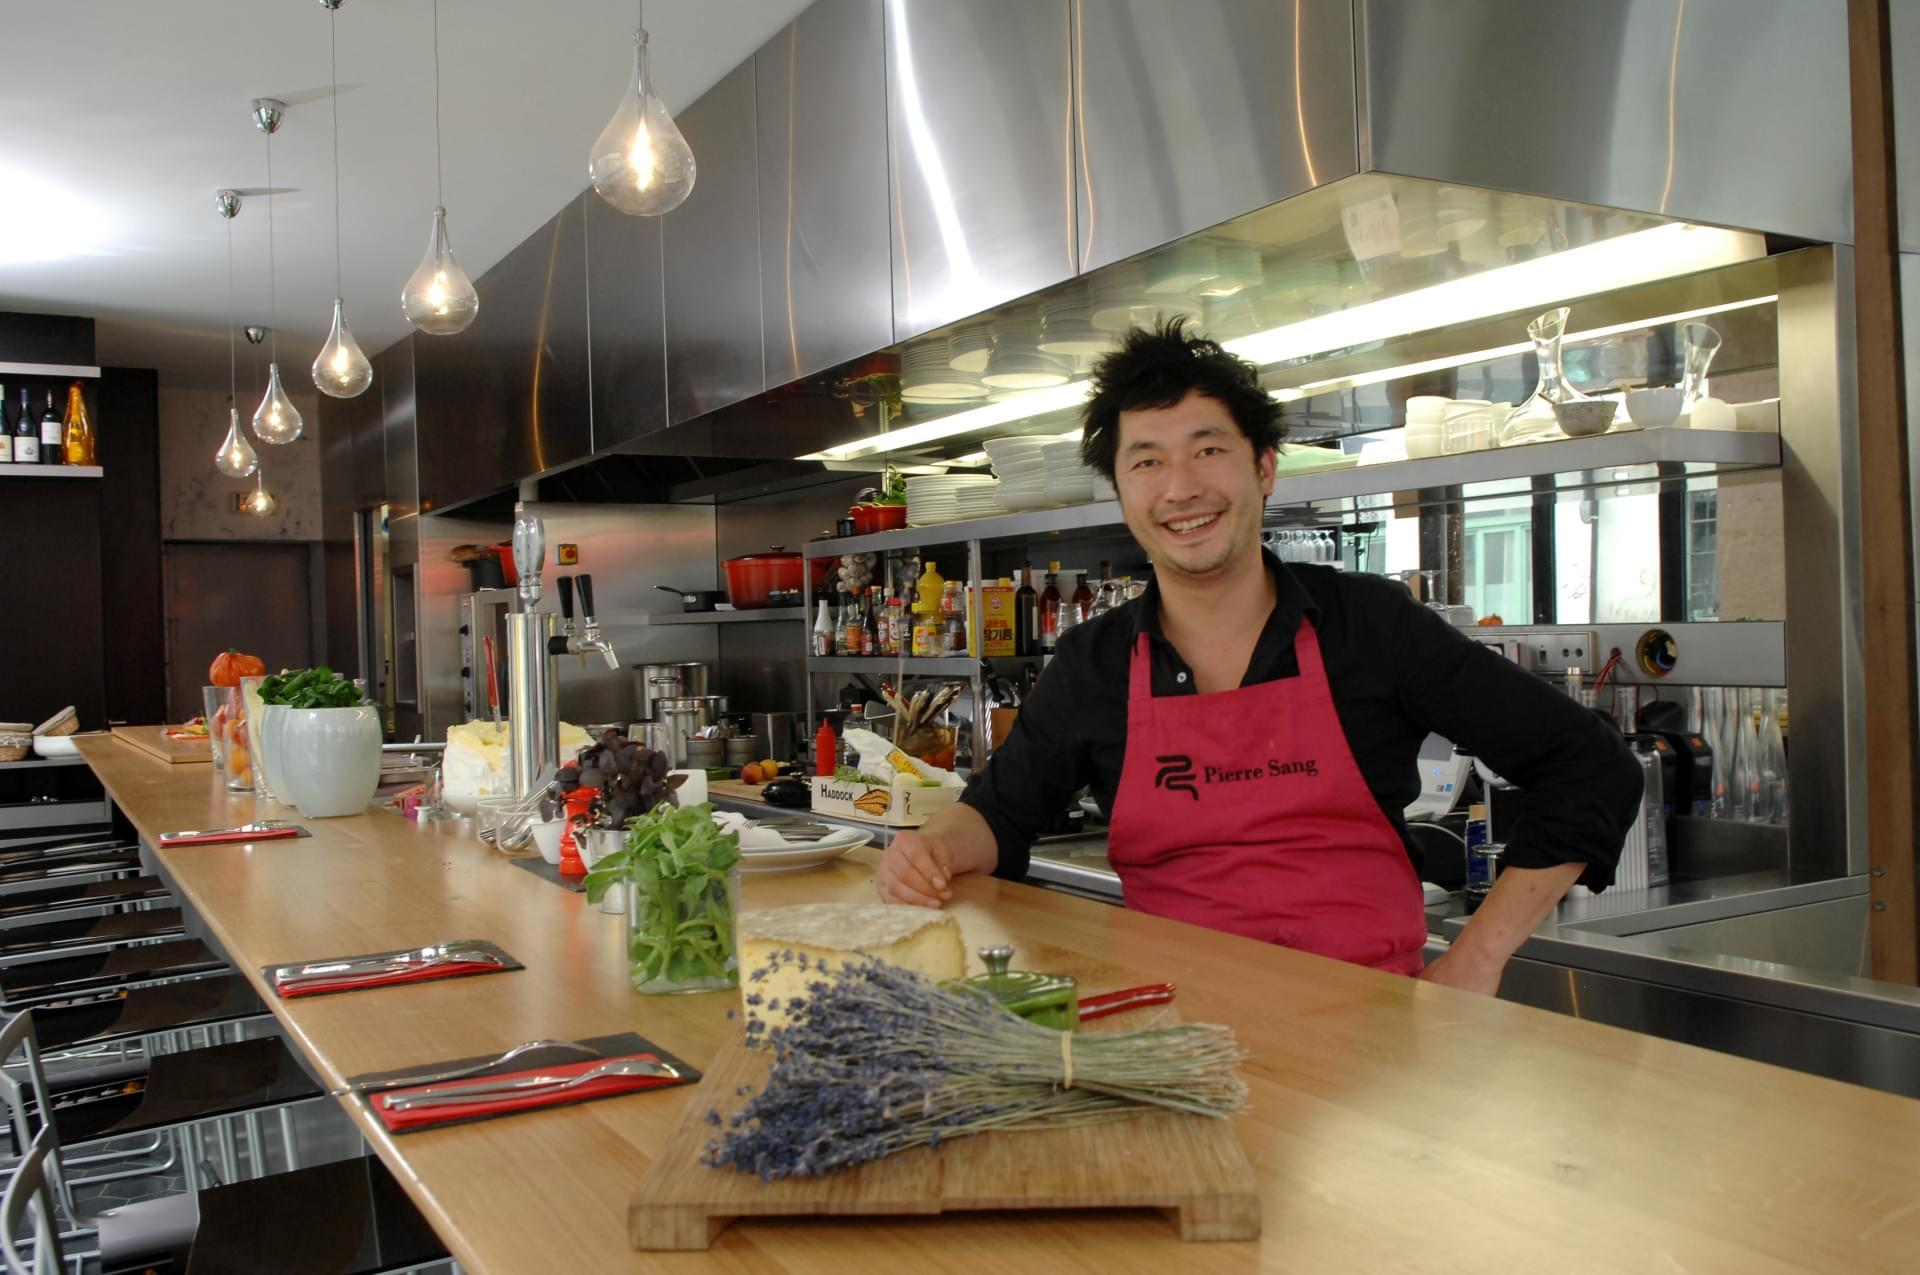 Photo Interview Exclusive de Pierre Sang Boyer, finaliste de Top Chef 2011 et chef du restaurant Pierre Sang in Oberkampf